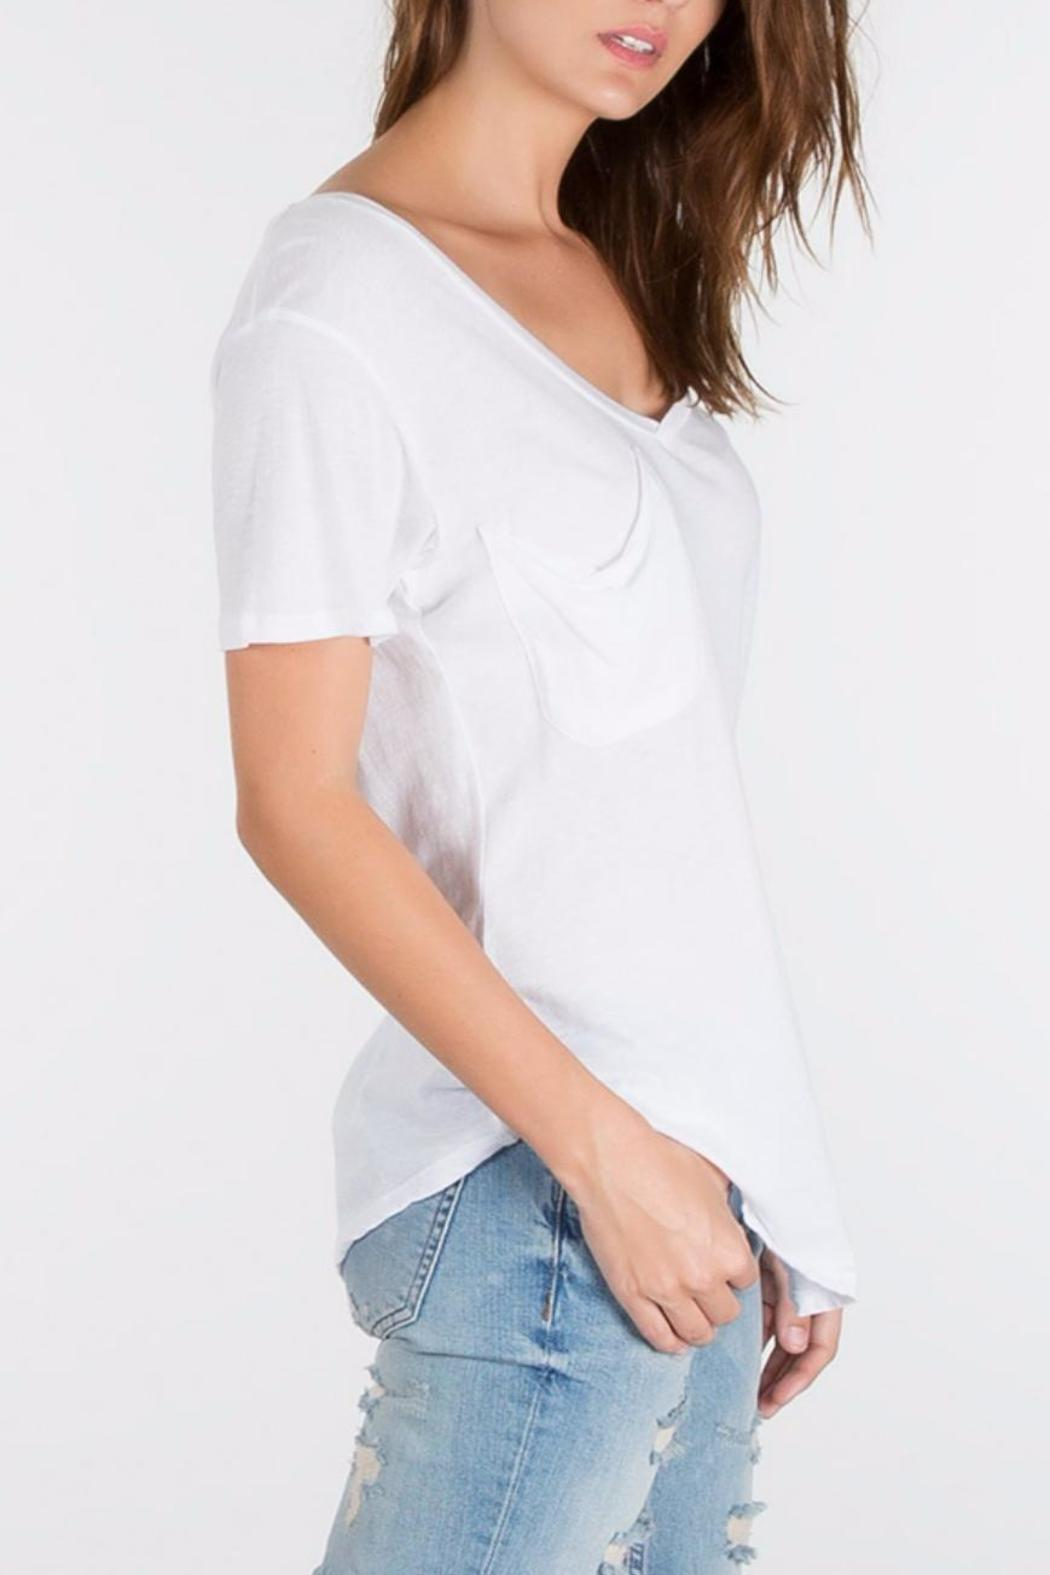 z supply White Pocket Tee - Side Cropped Image